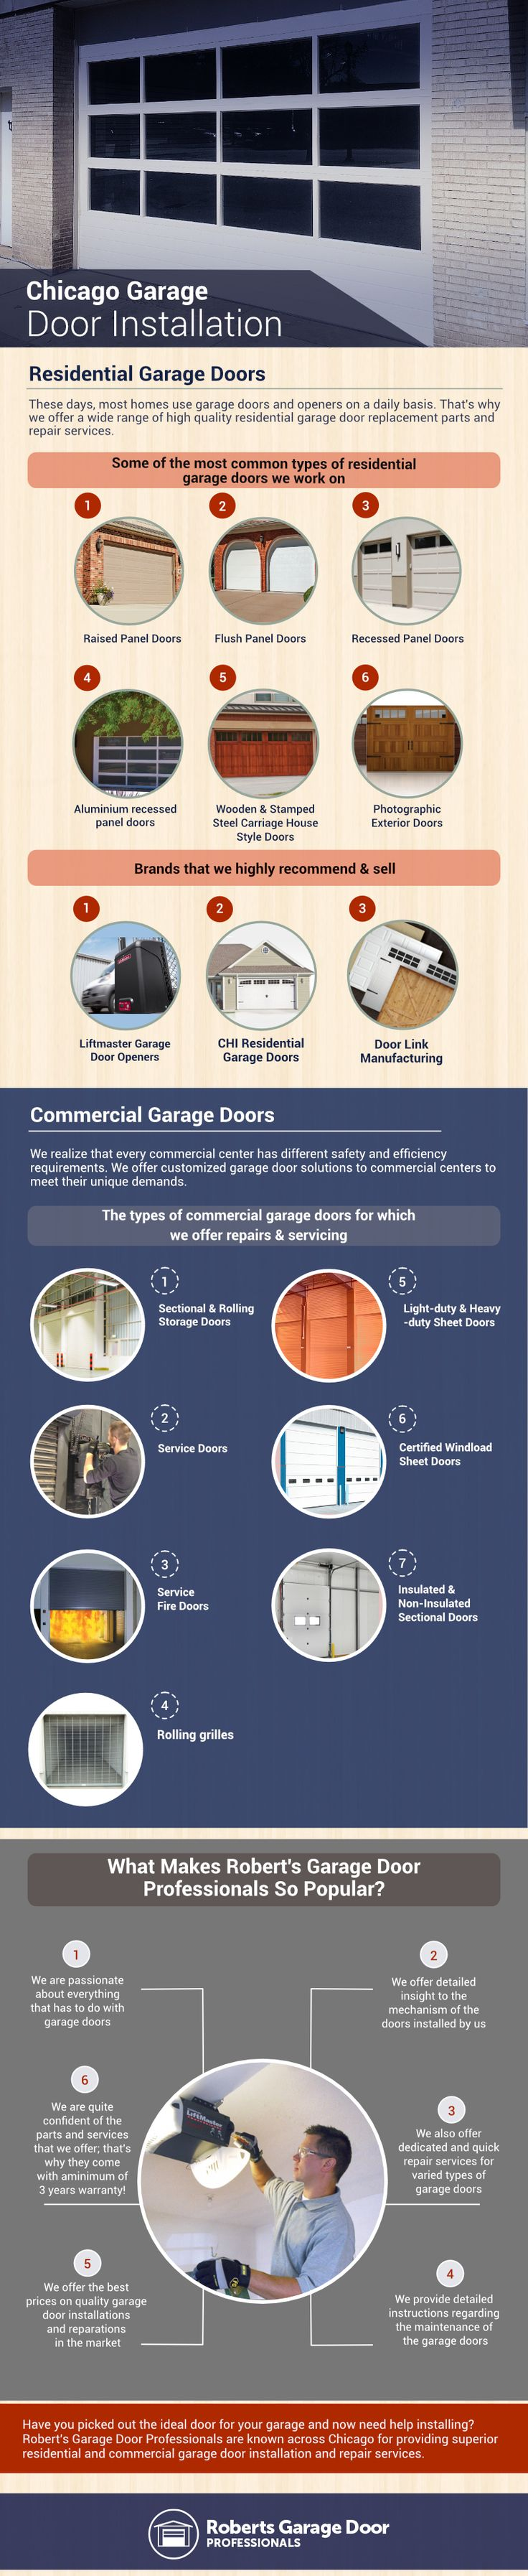 Die besten 25 ideal garage doors ideen auf pinterest picked out the ideal doors for your garage and now need help getting them installed roberts garage door professionals are known across chicago for rubansaba